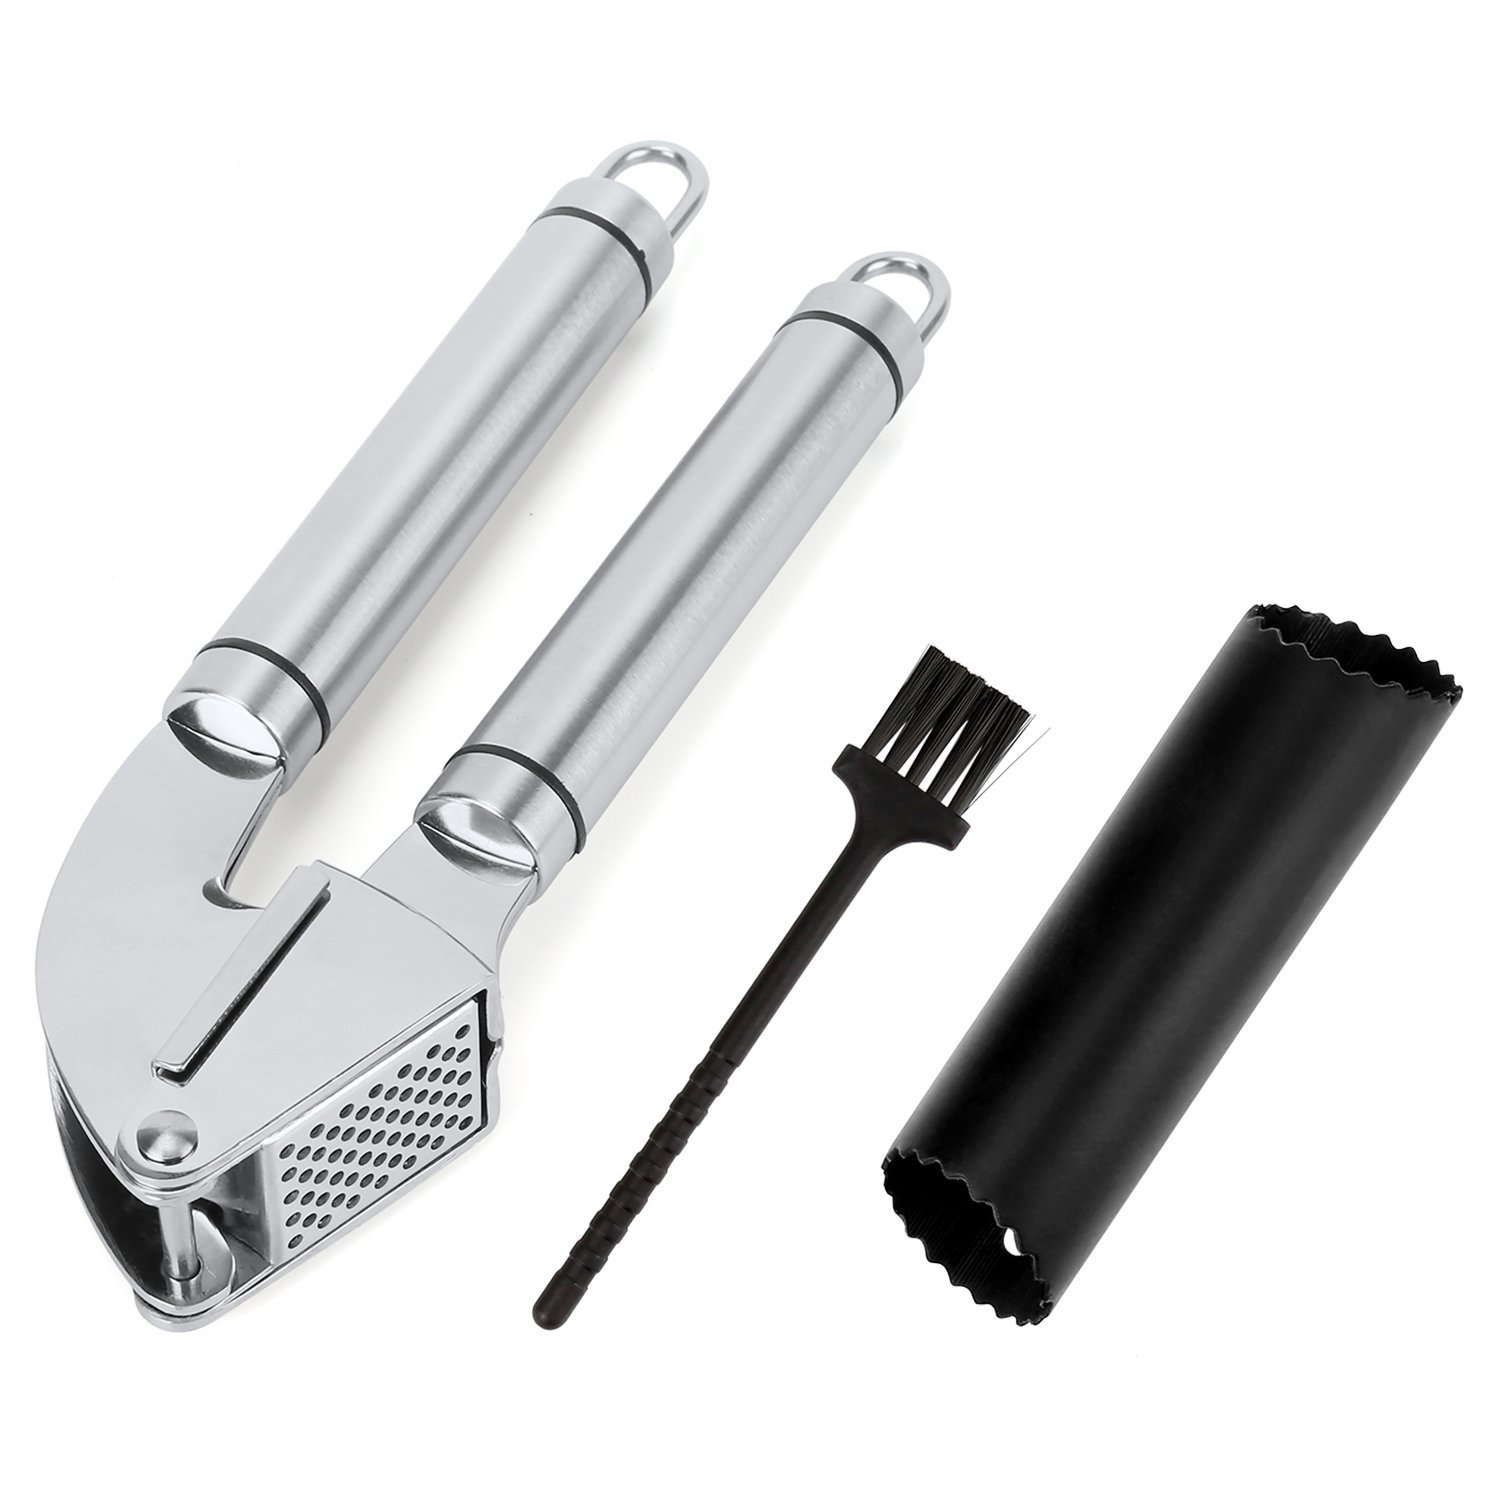 FSDUALWIN Garlic Press, Professional Stainless Steel Gadget. Easy to Use, Easy to Clean, Includes Silicone Tube Peeler + Cleaning Brush.